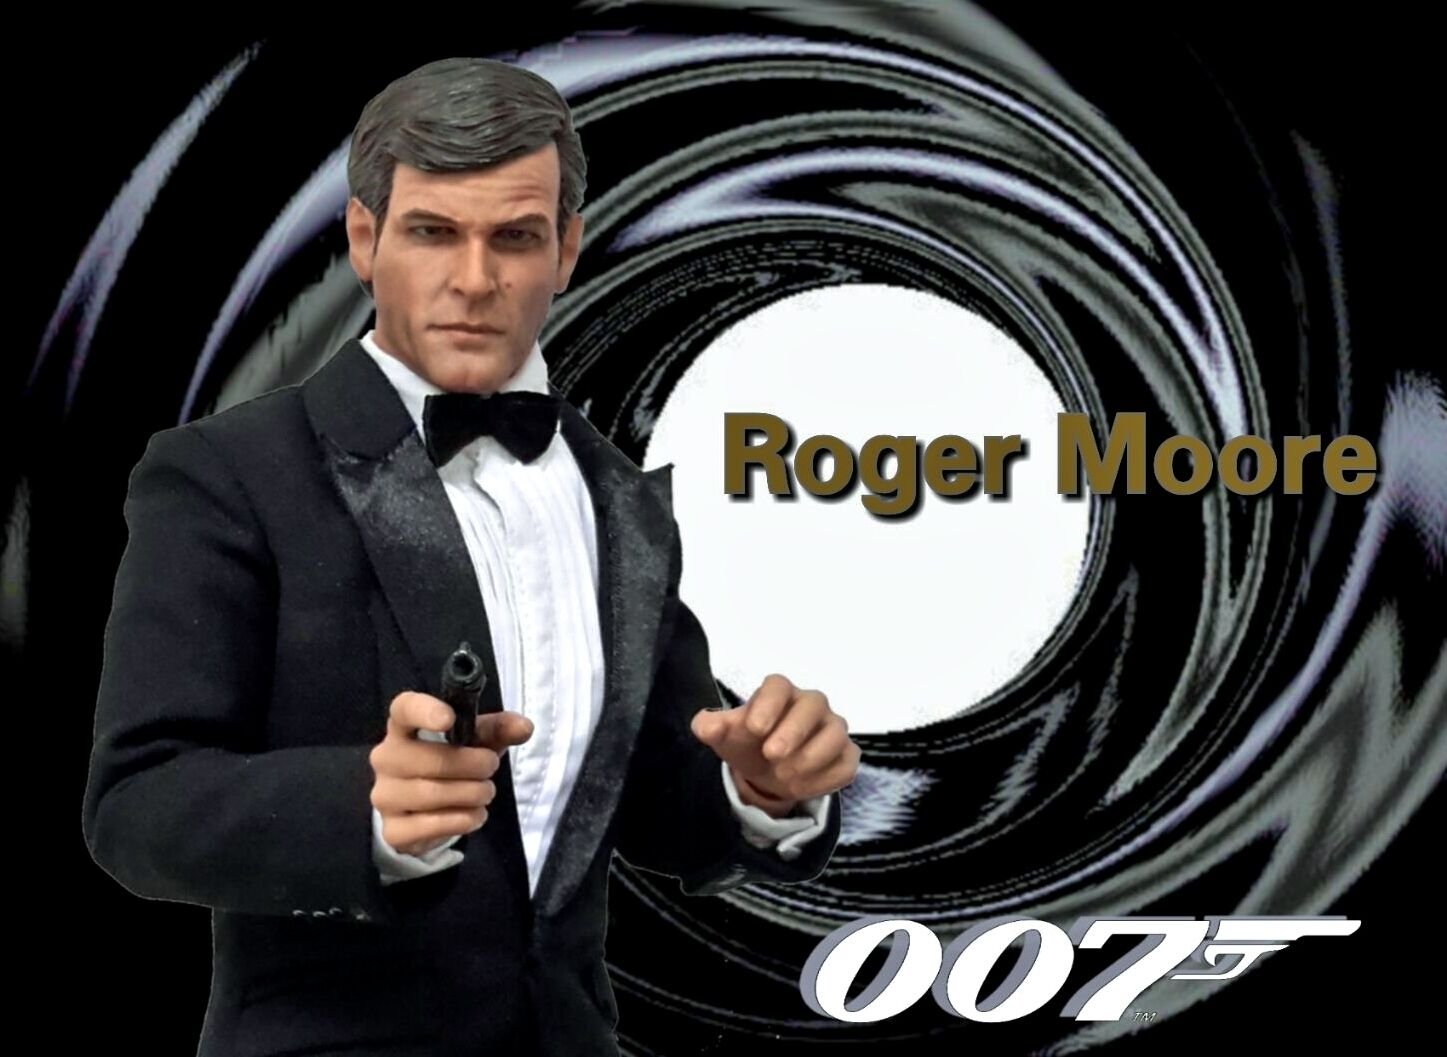 1 6 James Bond Clothing & Roger Moore Head Sculpt Pierce Brosnan Timothy Dalton